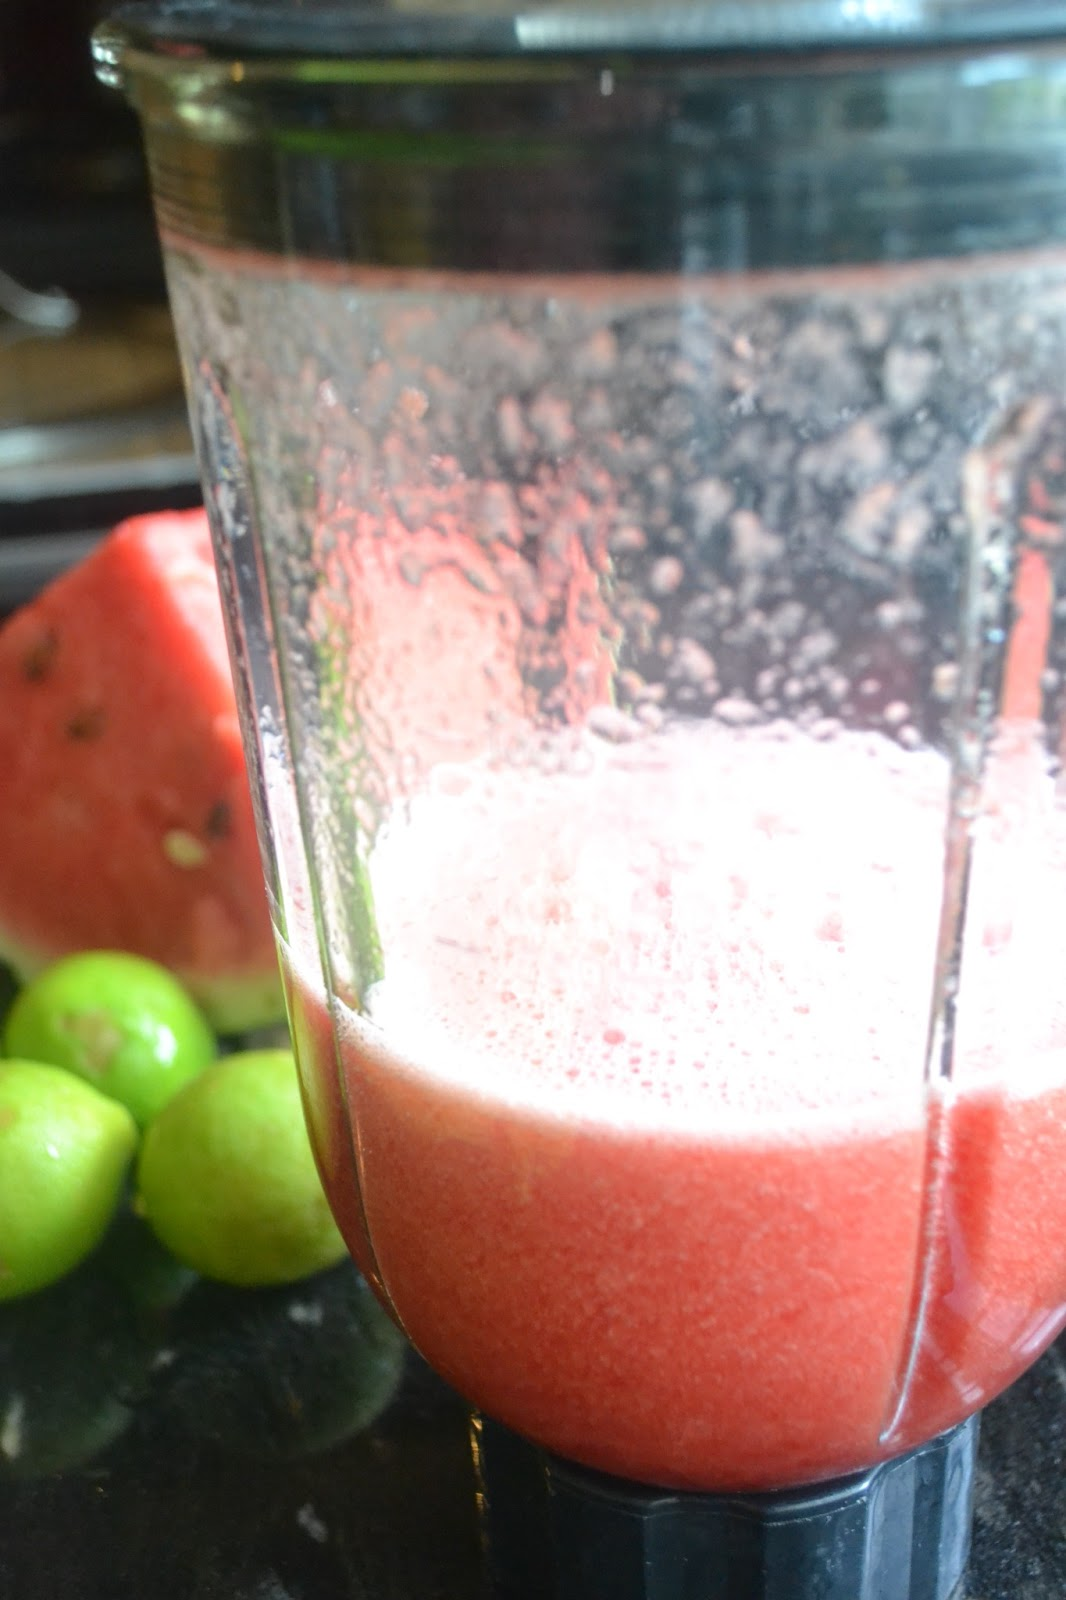 Greedy Girl : Watermelonade turned Sky juice turned Watermelonade